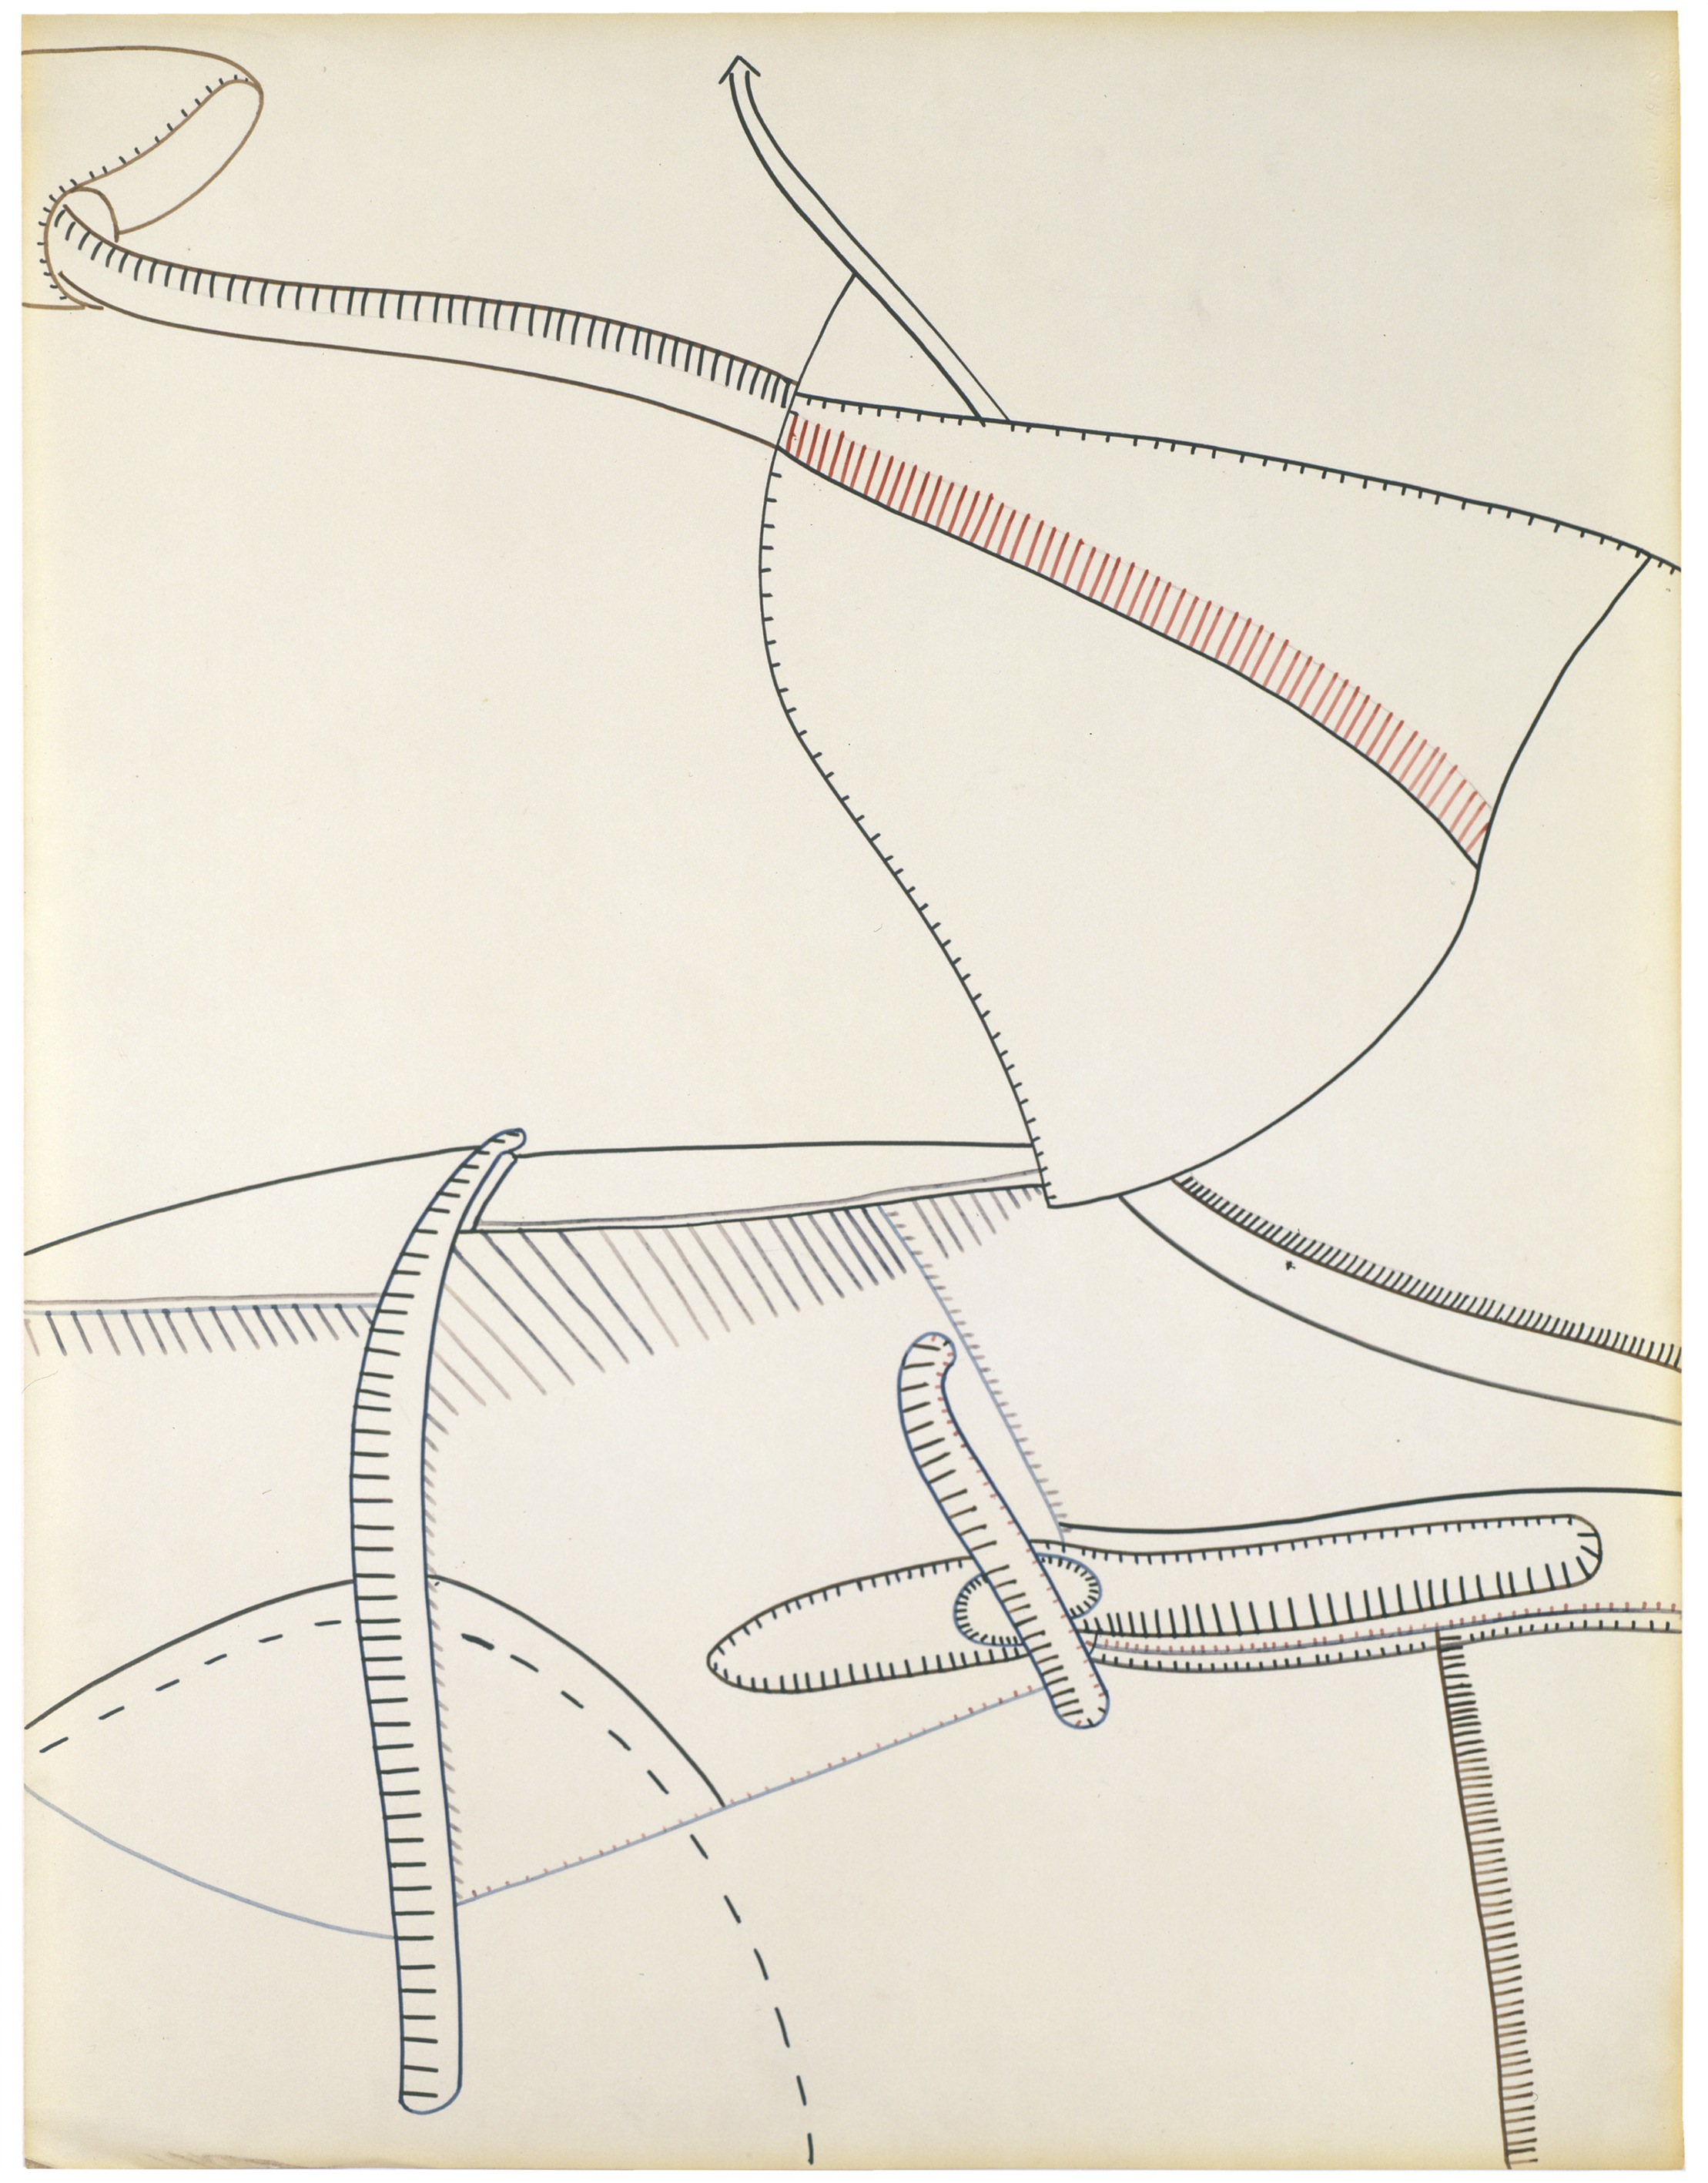 Eva Hesse No title, 1965 Ink on paper 64.8 x 49.8 cm